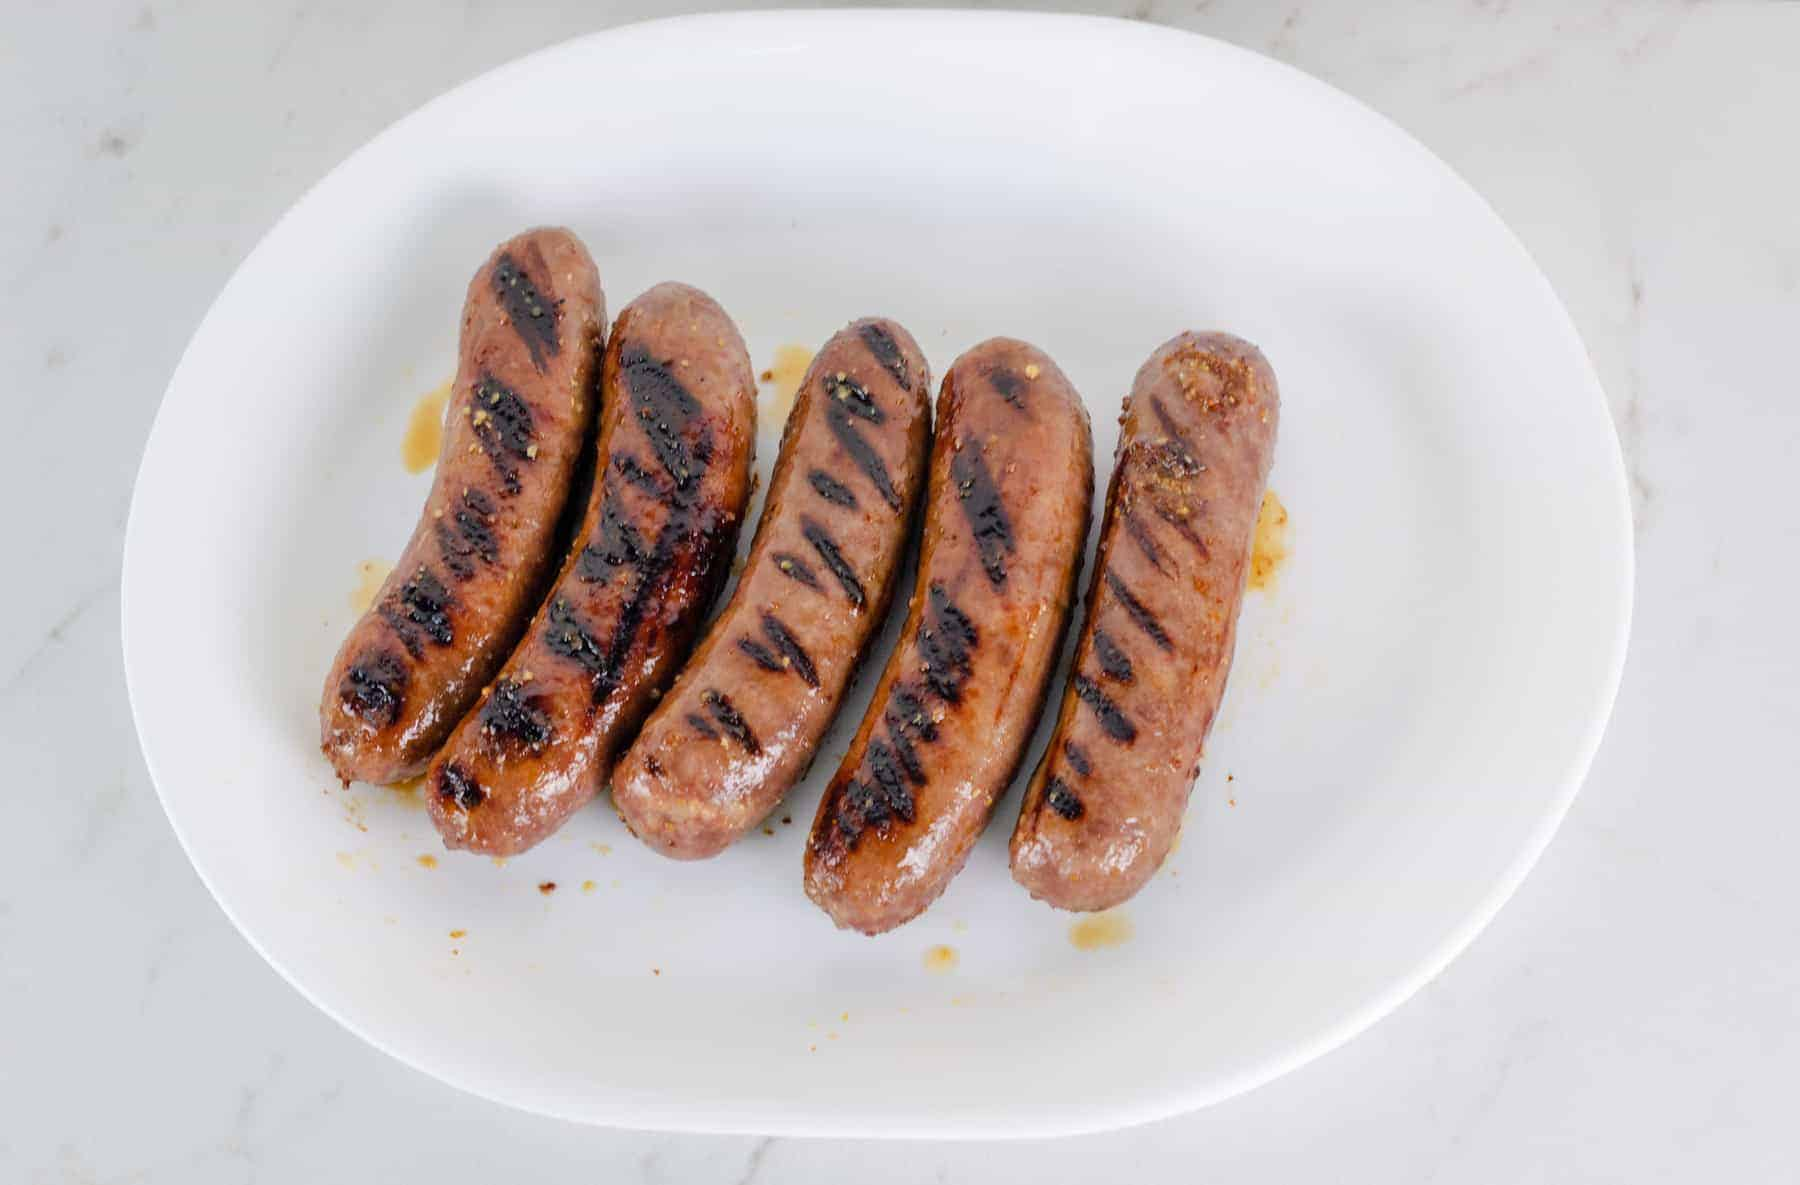 Honey Mustard Beer Glazed Bratwurst Recipe Picture - grilled bratwurst on a platter